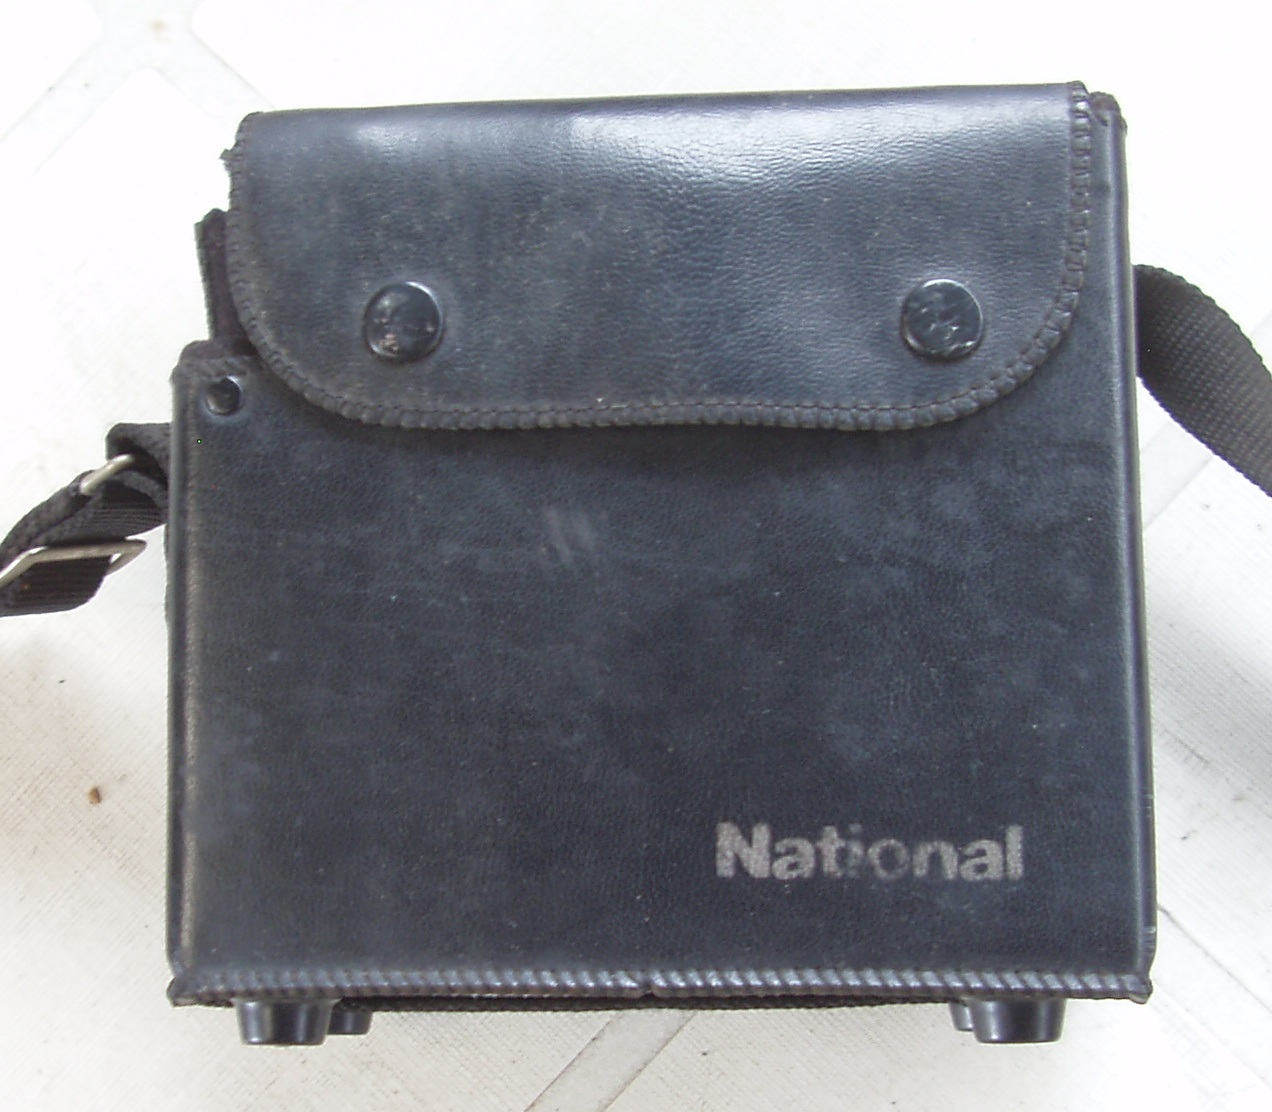 National Power Pack PW-201